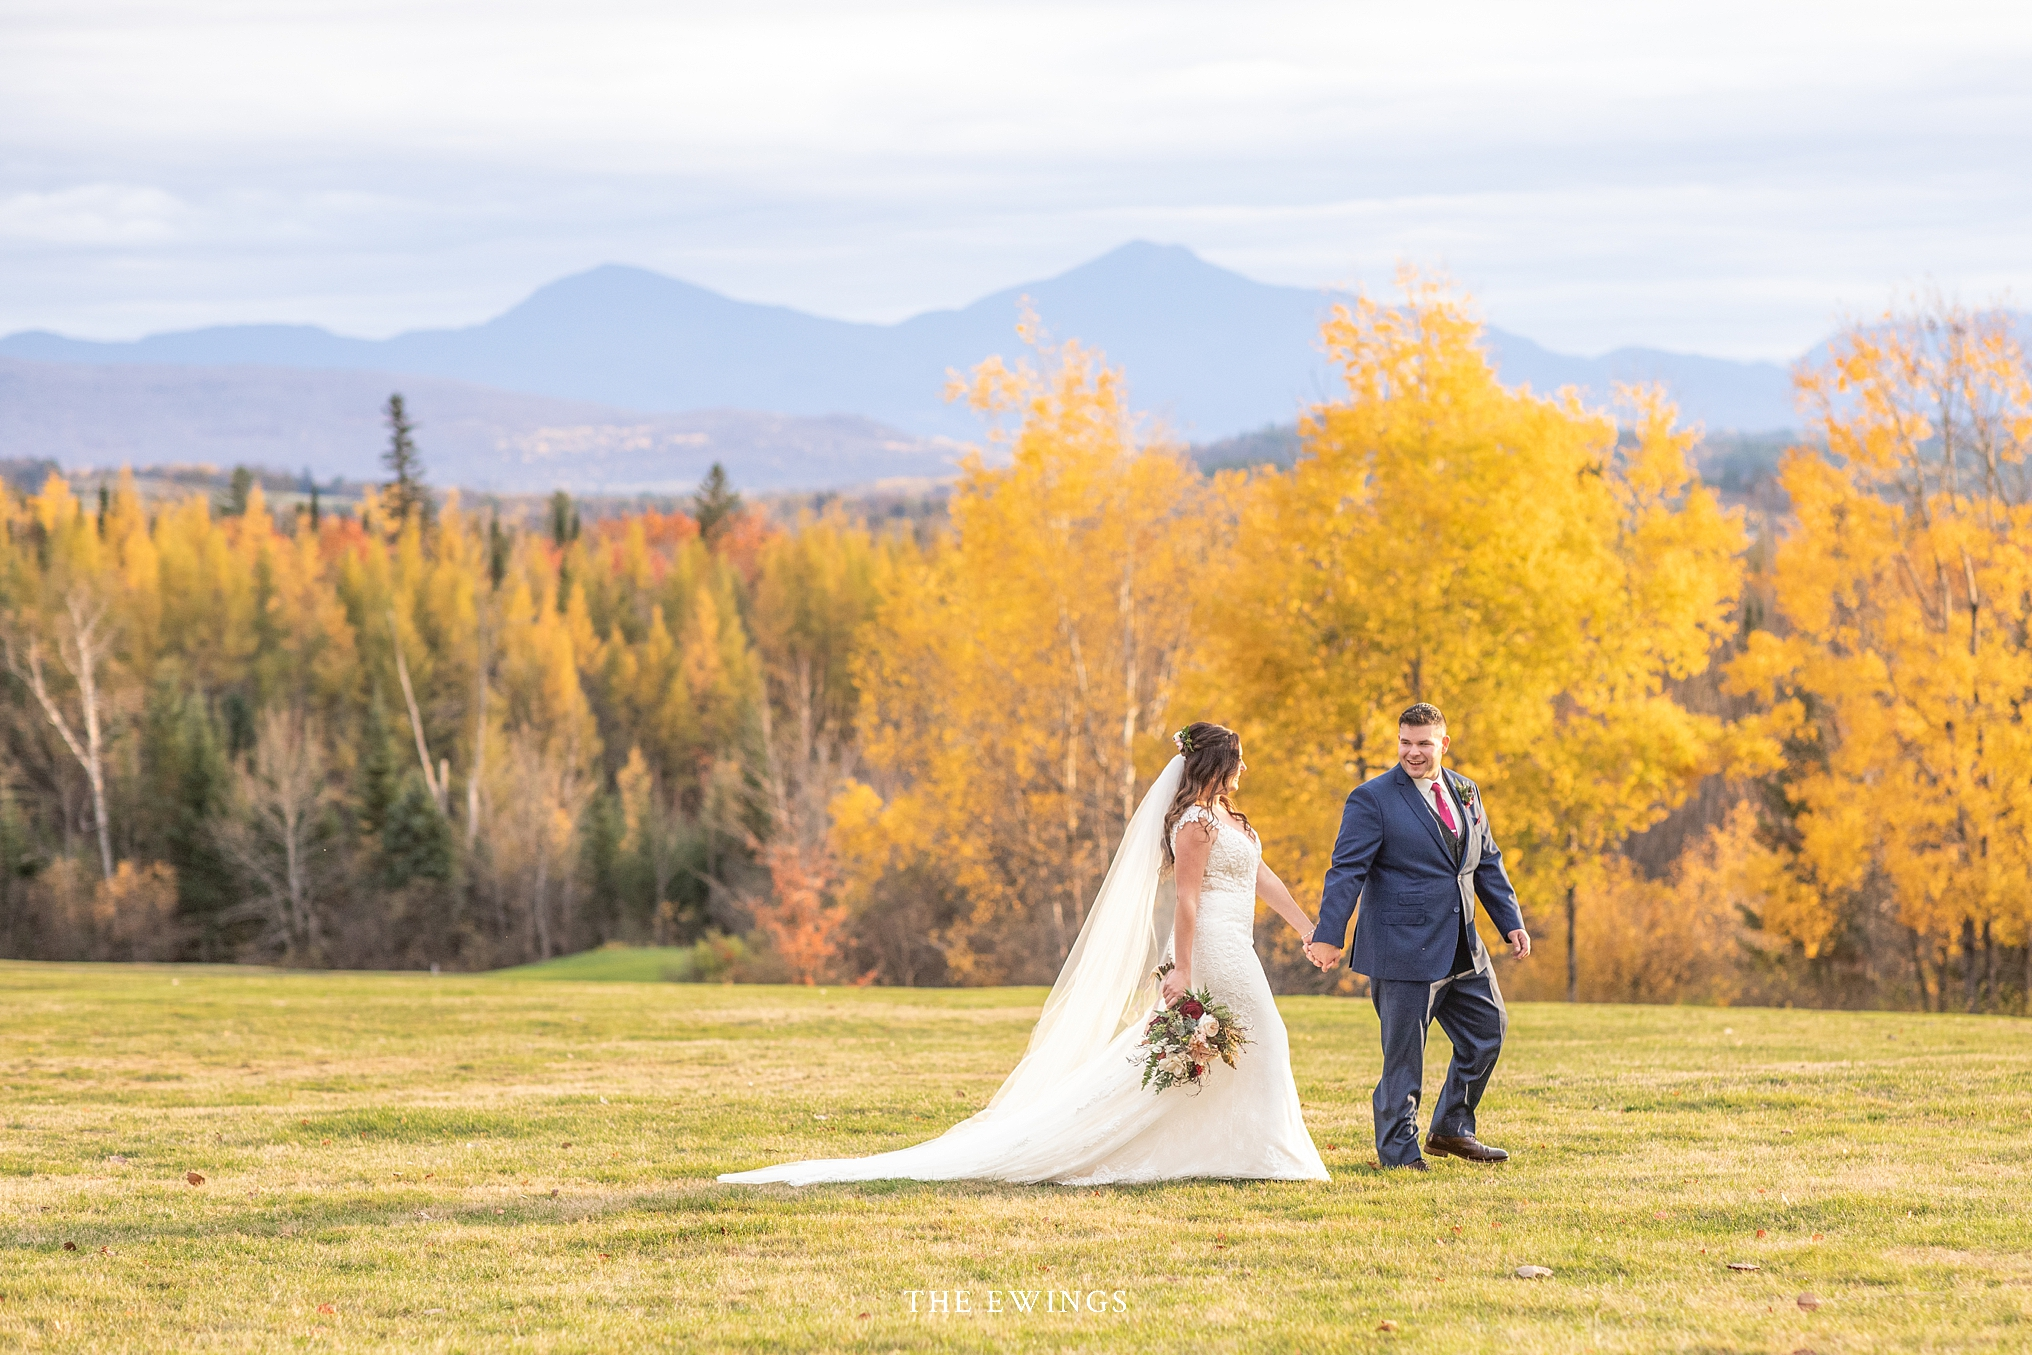 The most epic mountain views in New England at the Mountainview grand a unique wedding venue and hotel in NH.